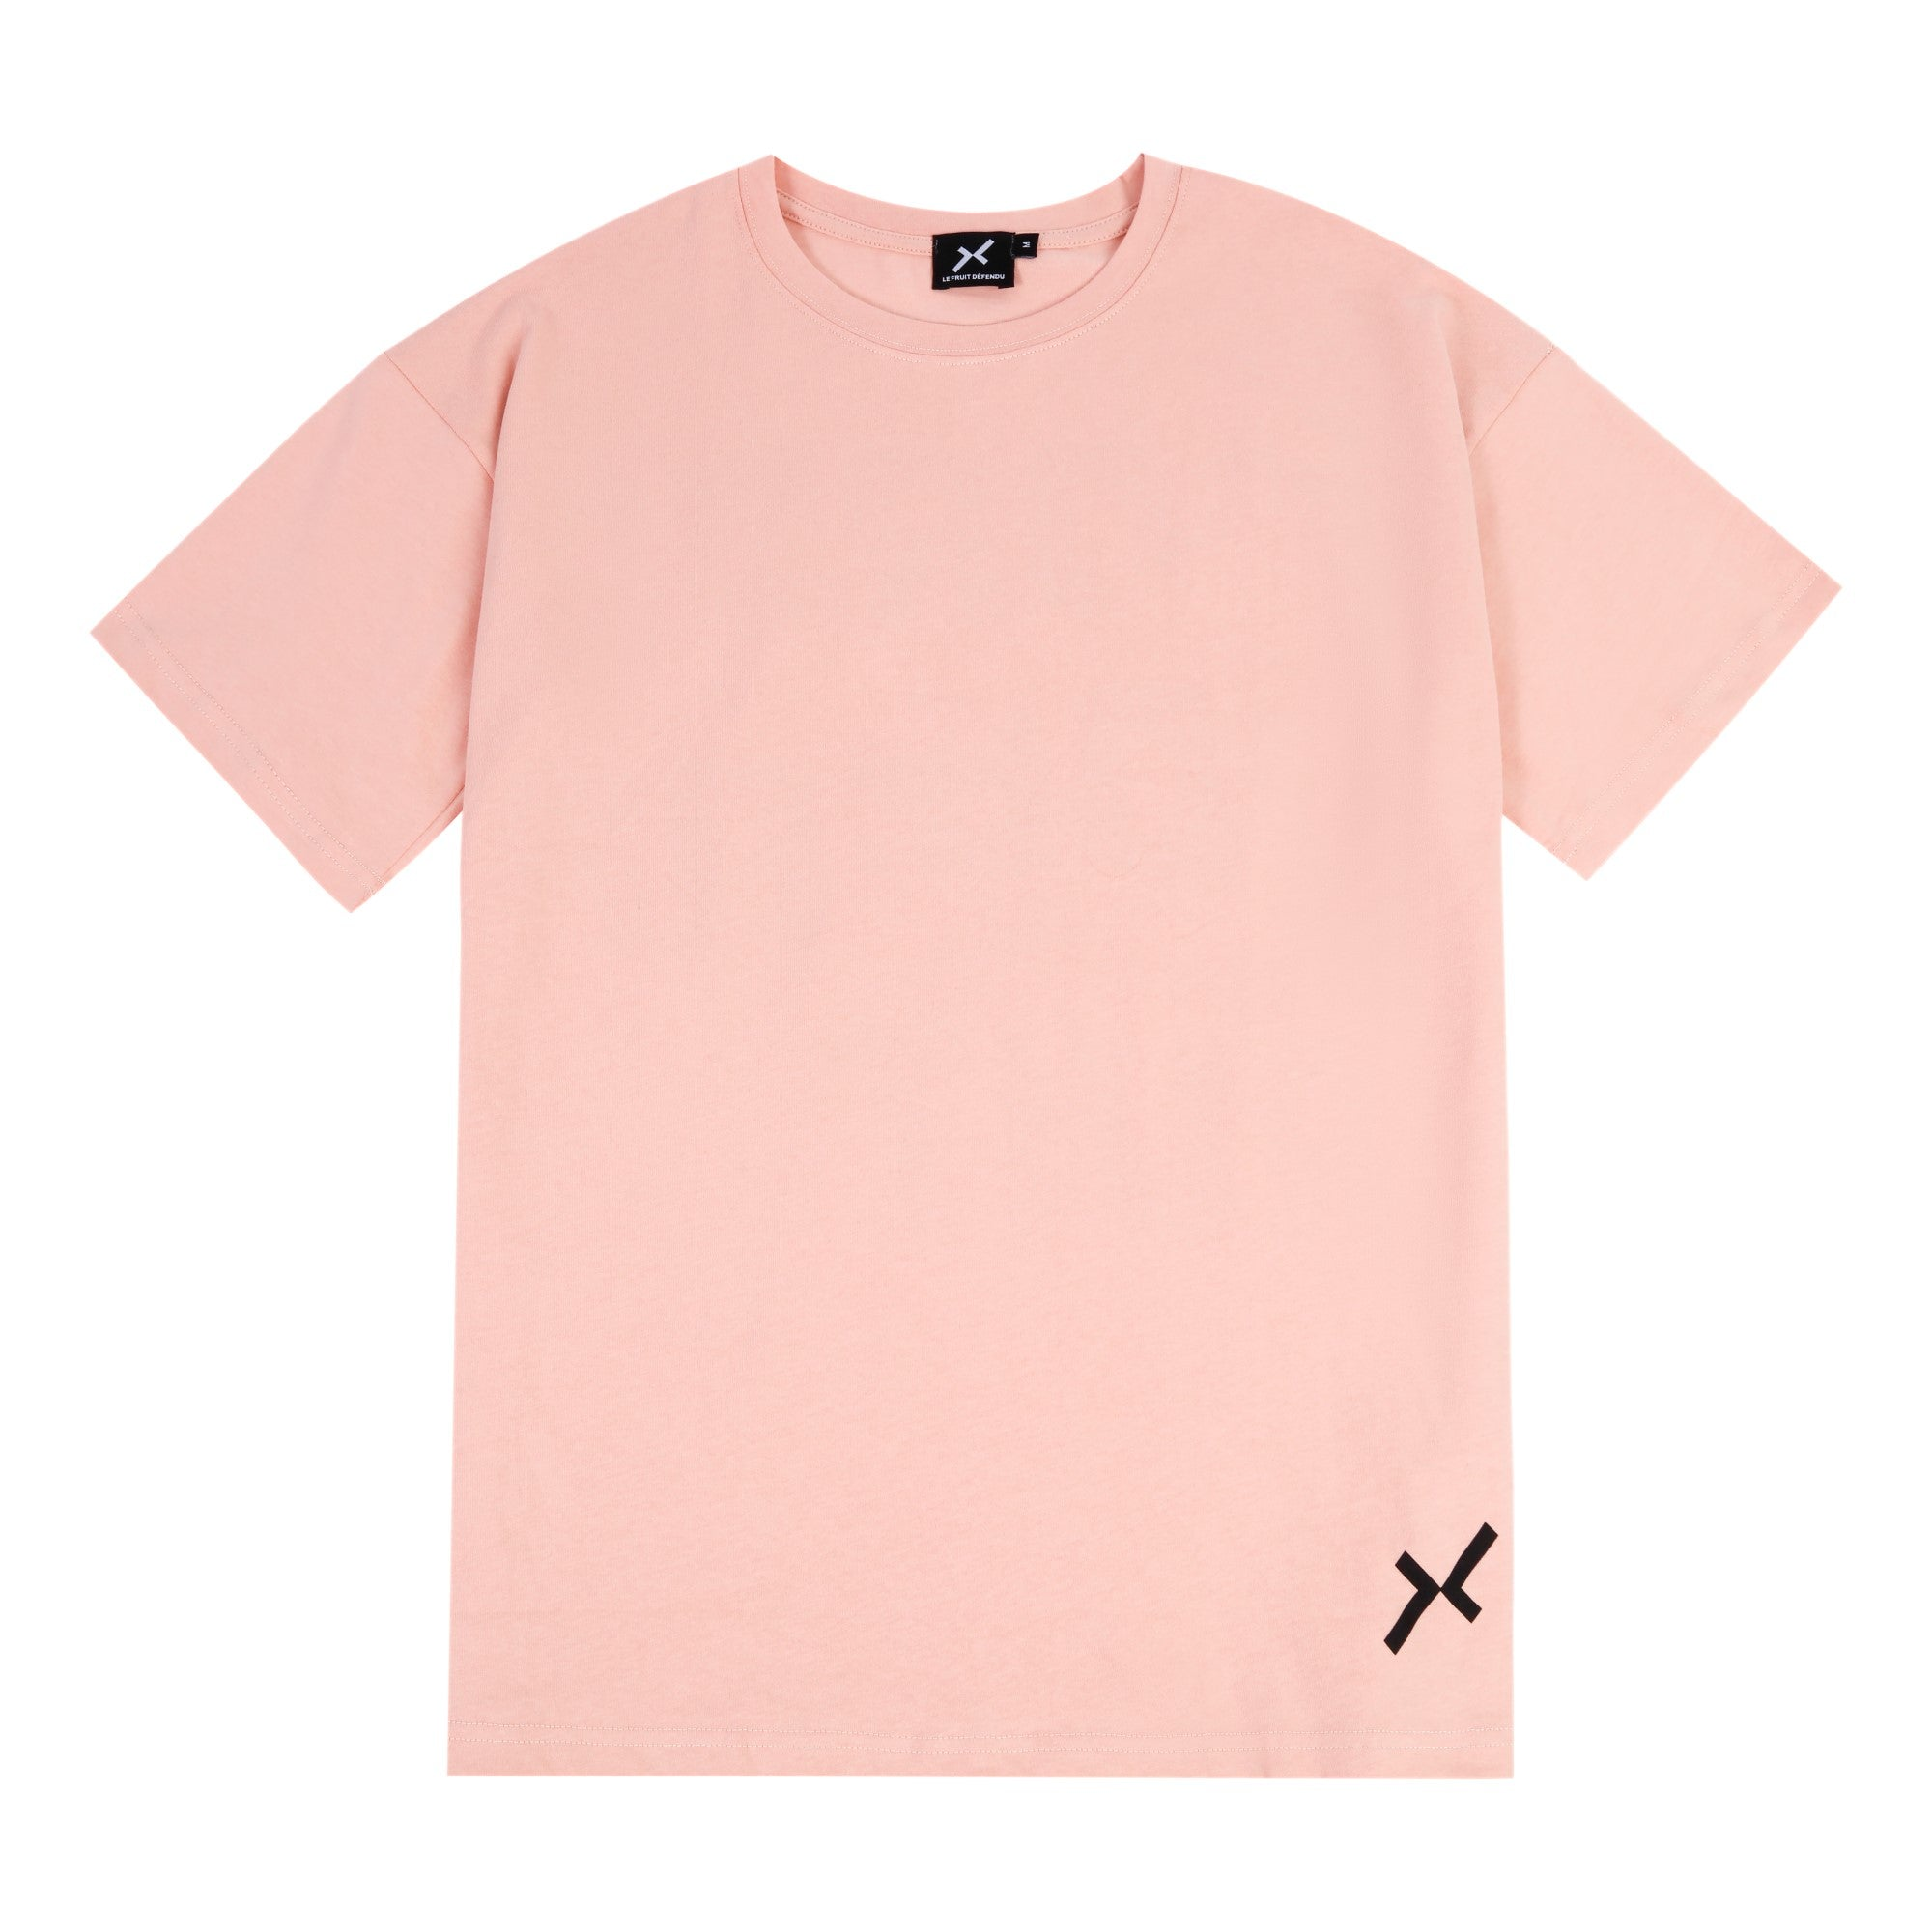 Tempting Fate Tee - Pink